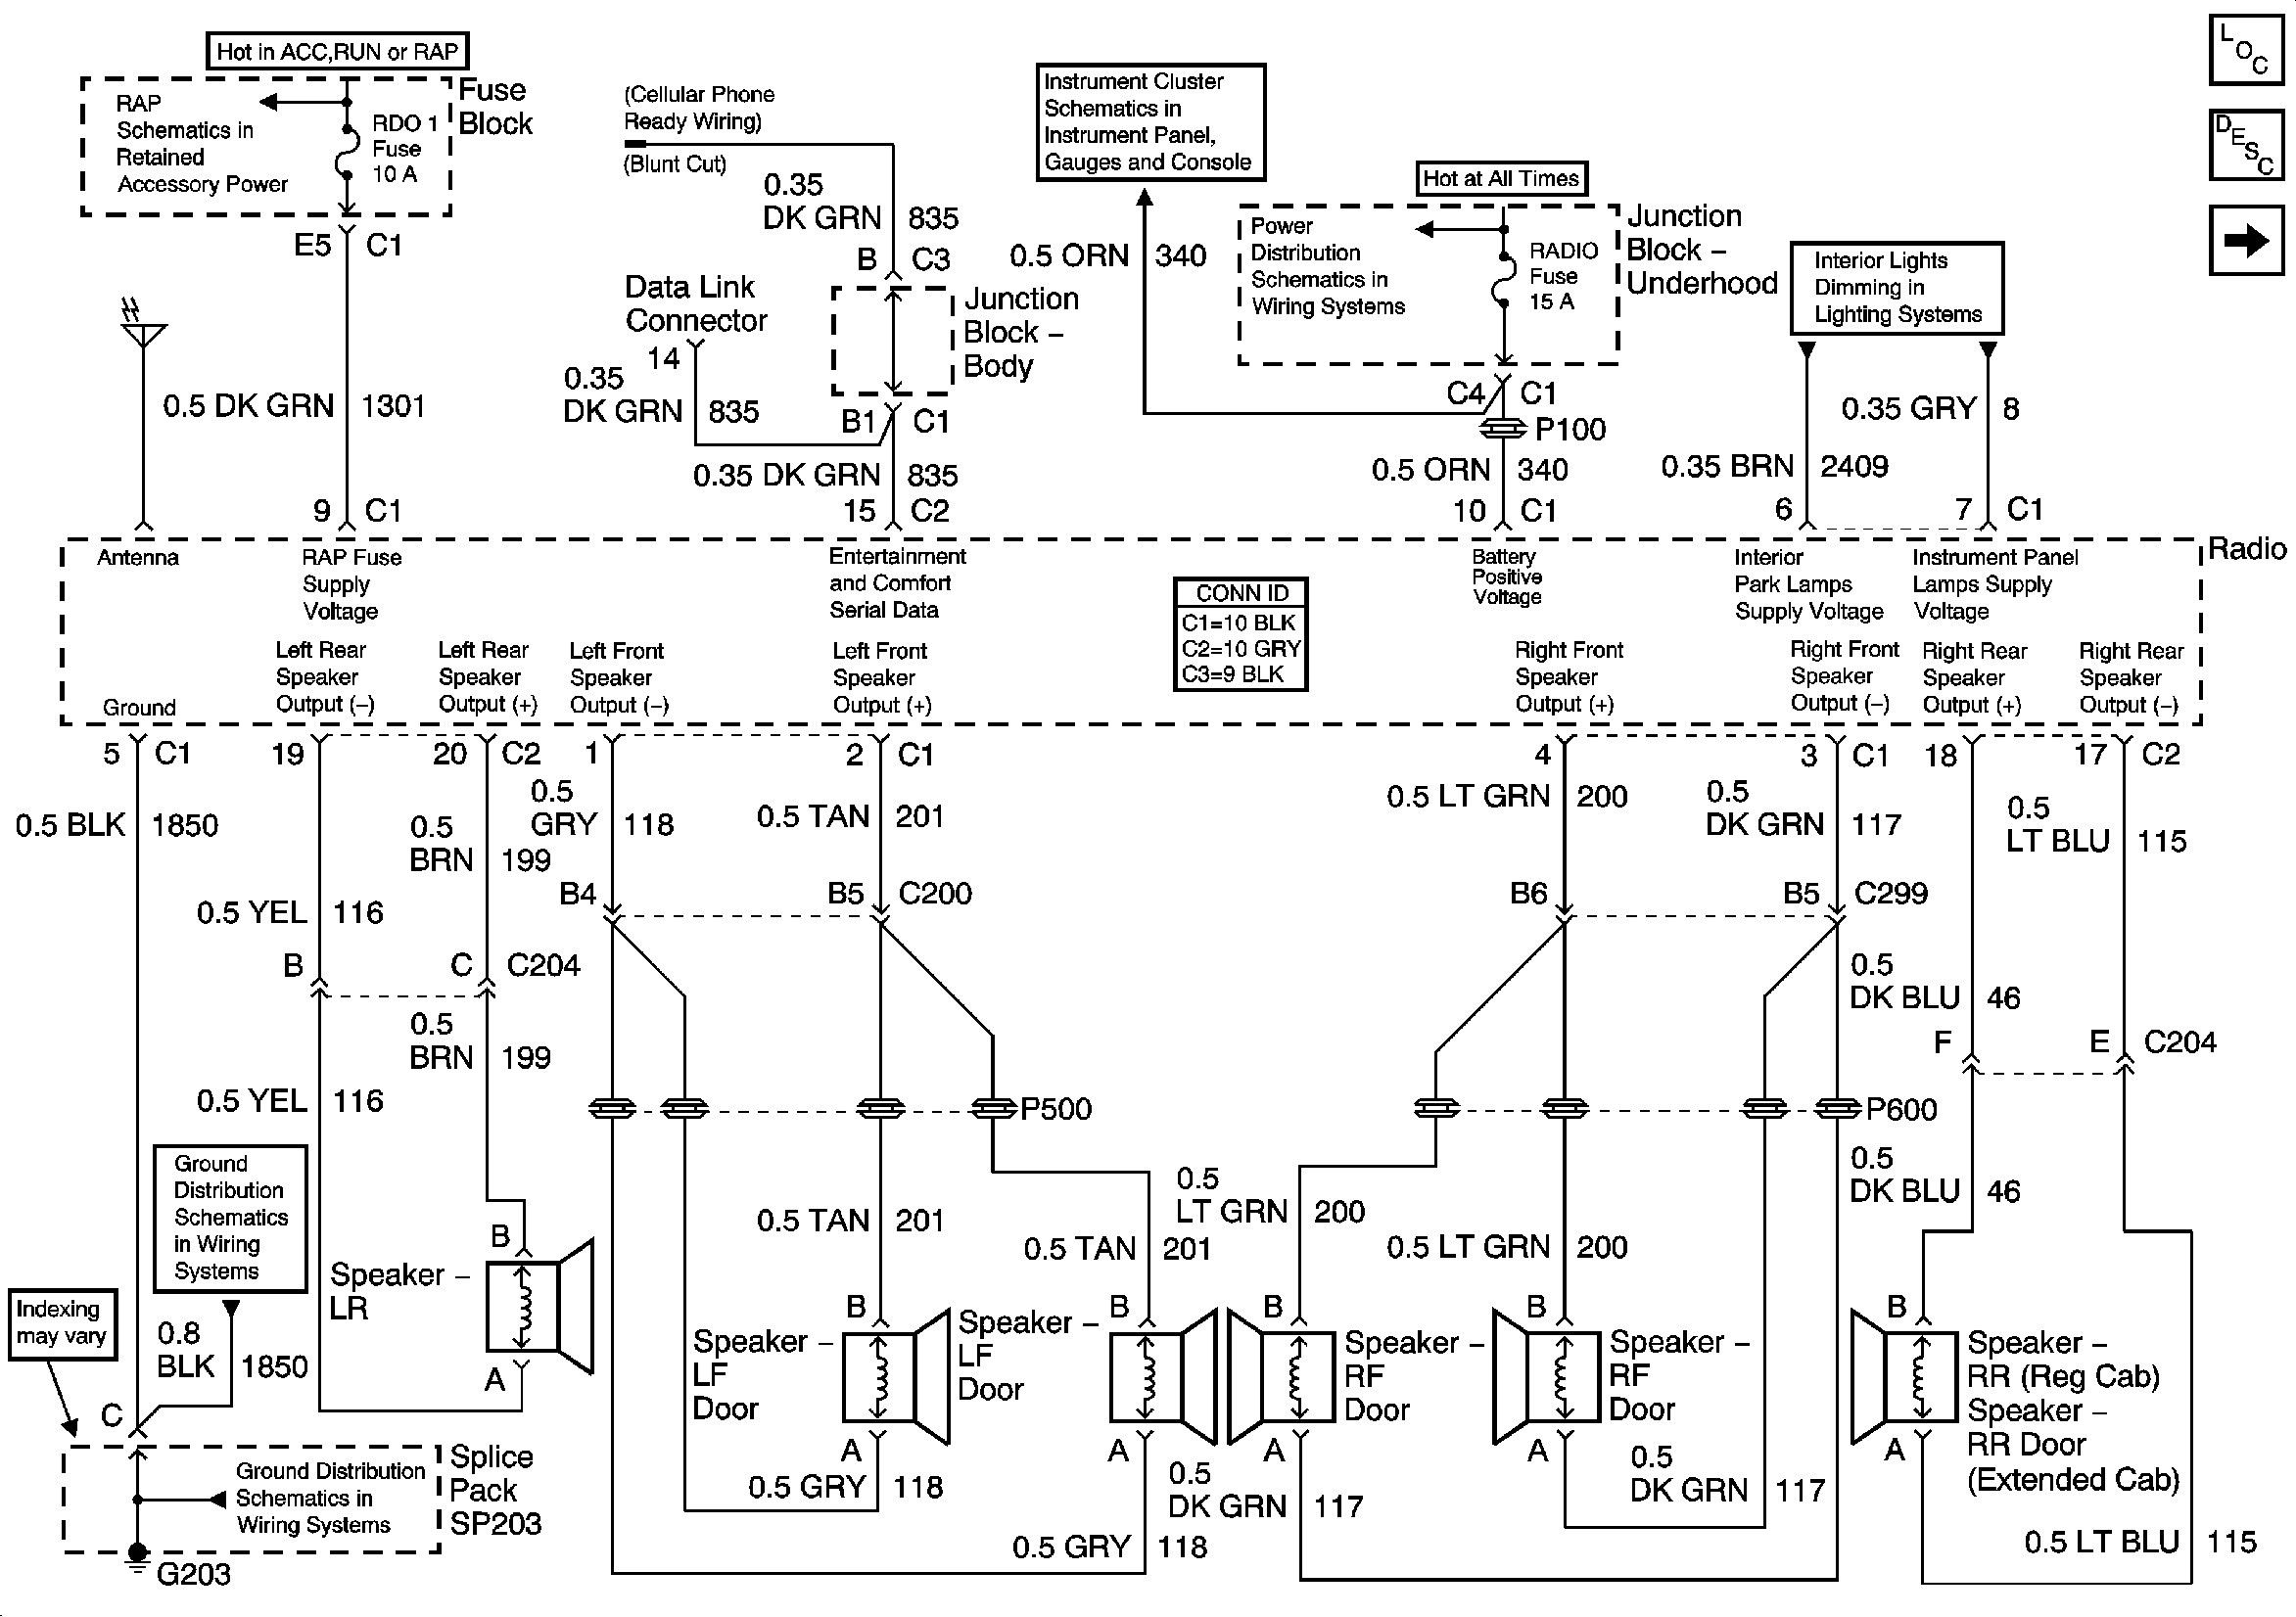 2007 chevy silverado hitch wiring diagram unique 2007 dodge ram 1500 headlight wiring diagram diagram  headlight wiring diagram diagram